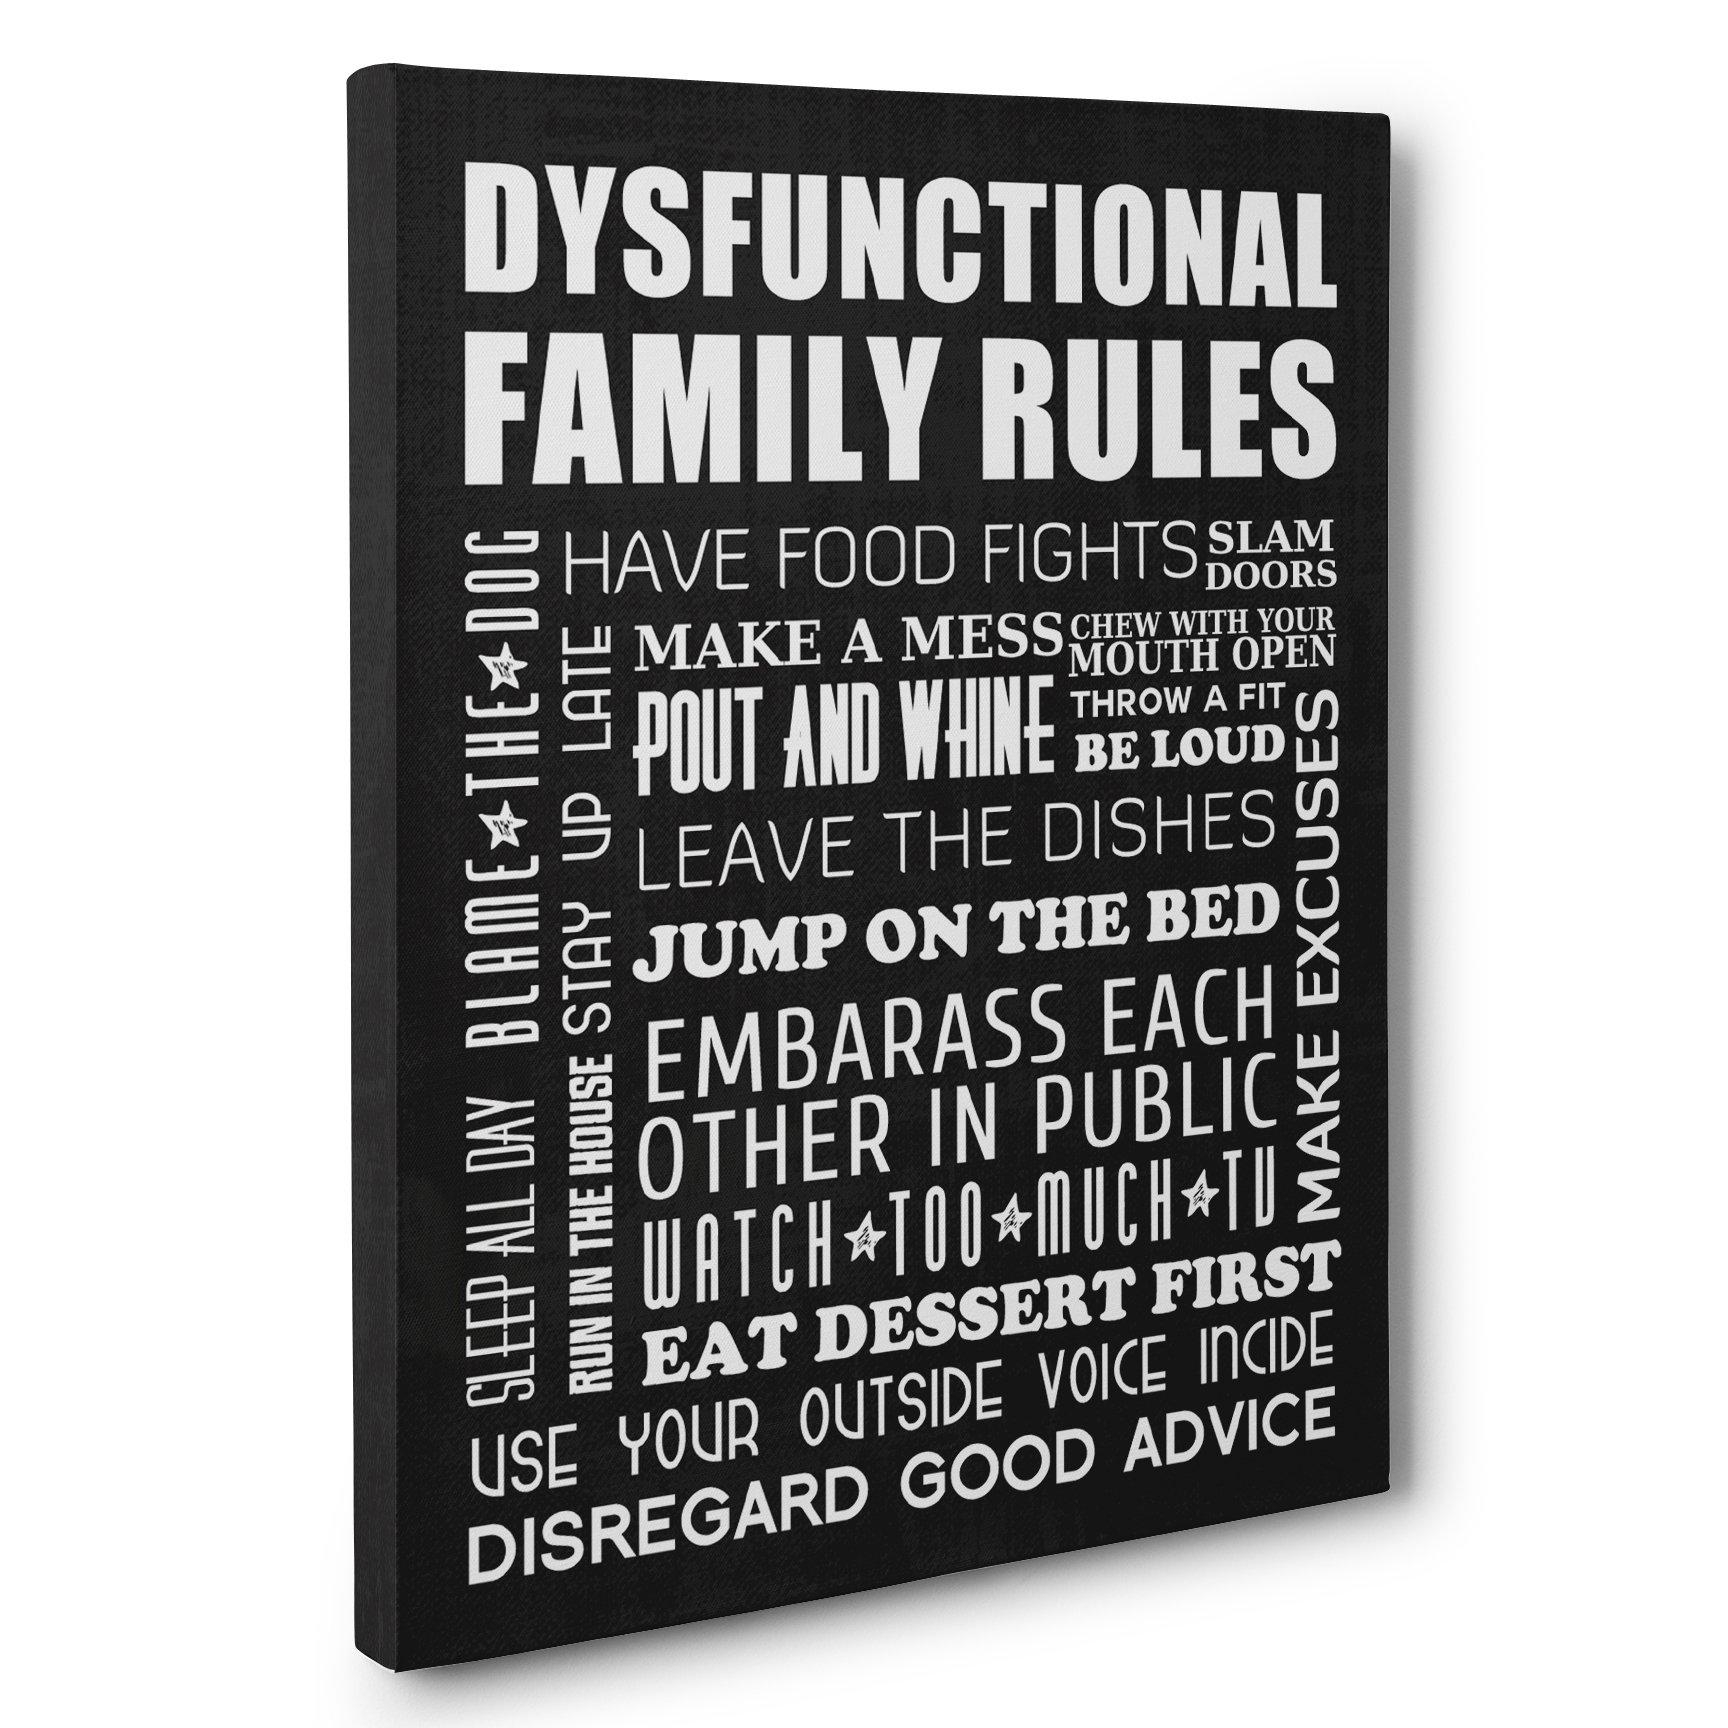 Dysfunctional Family Rules Home Décor Canvas Wall Art – Paper Blast With Regard To Family Rules Canvas Wall Art (View 7 of 20)